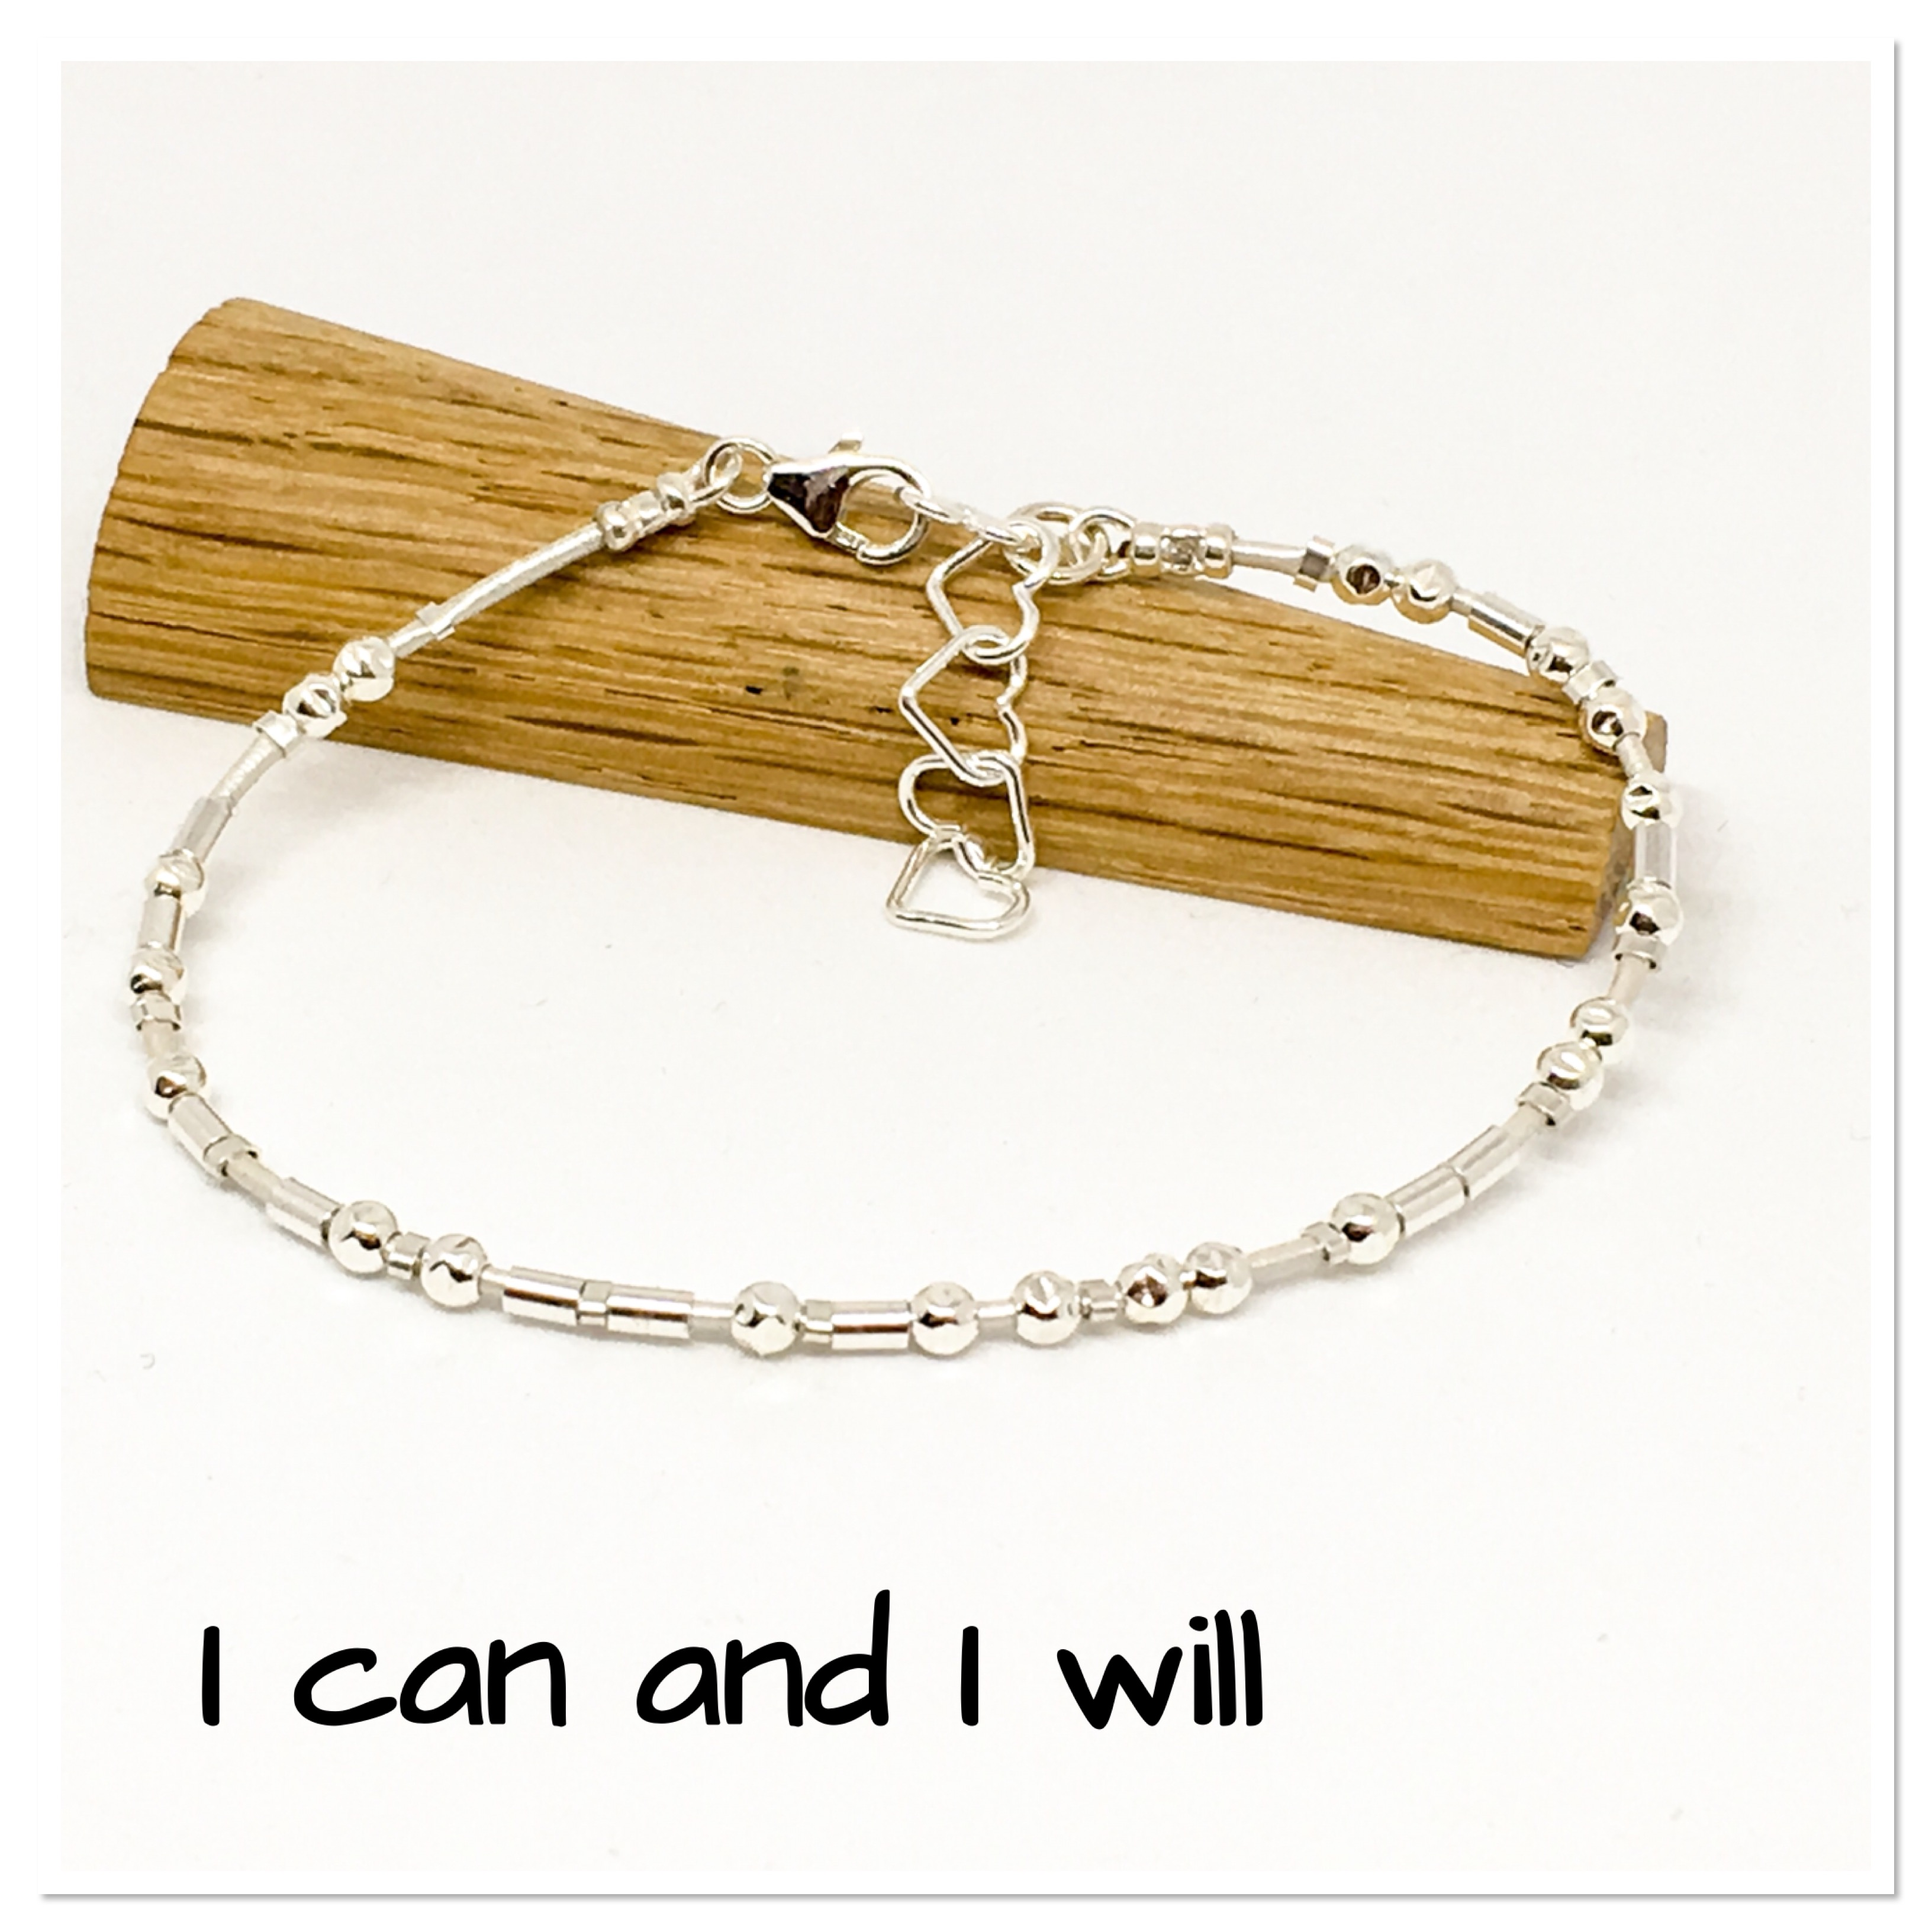 55a109fb90fbd I can and I will Morse code bracelet, hidden message bracelet, sterling  silver and leather